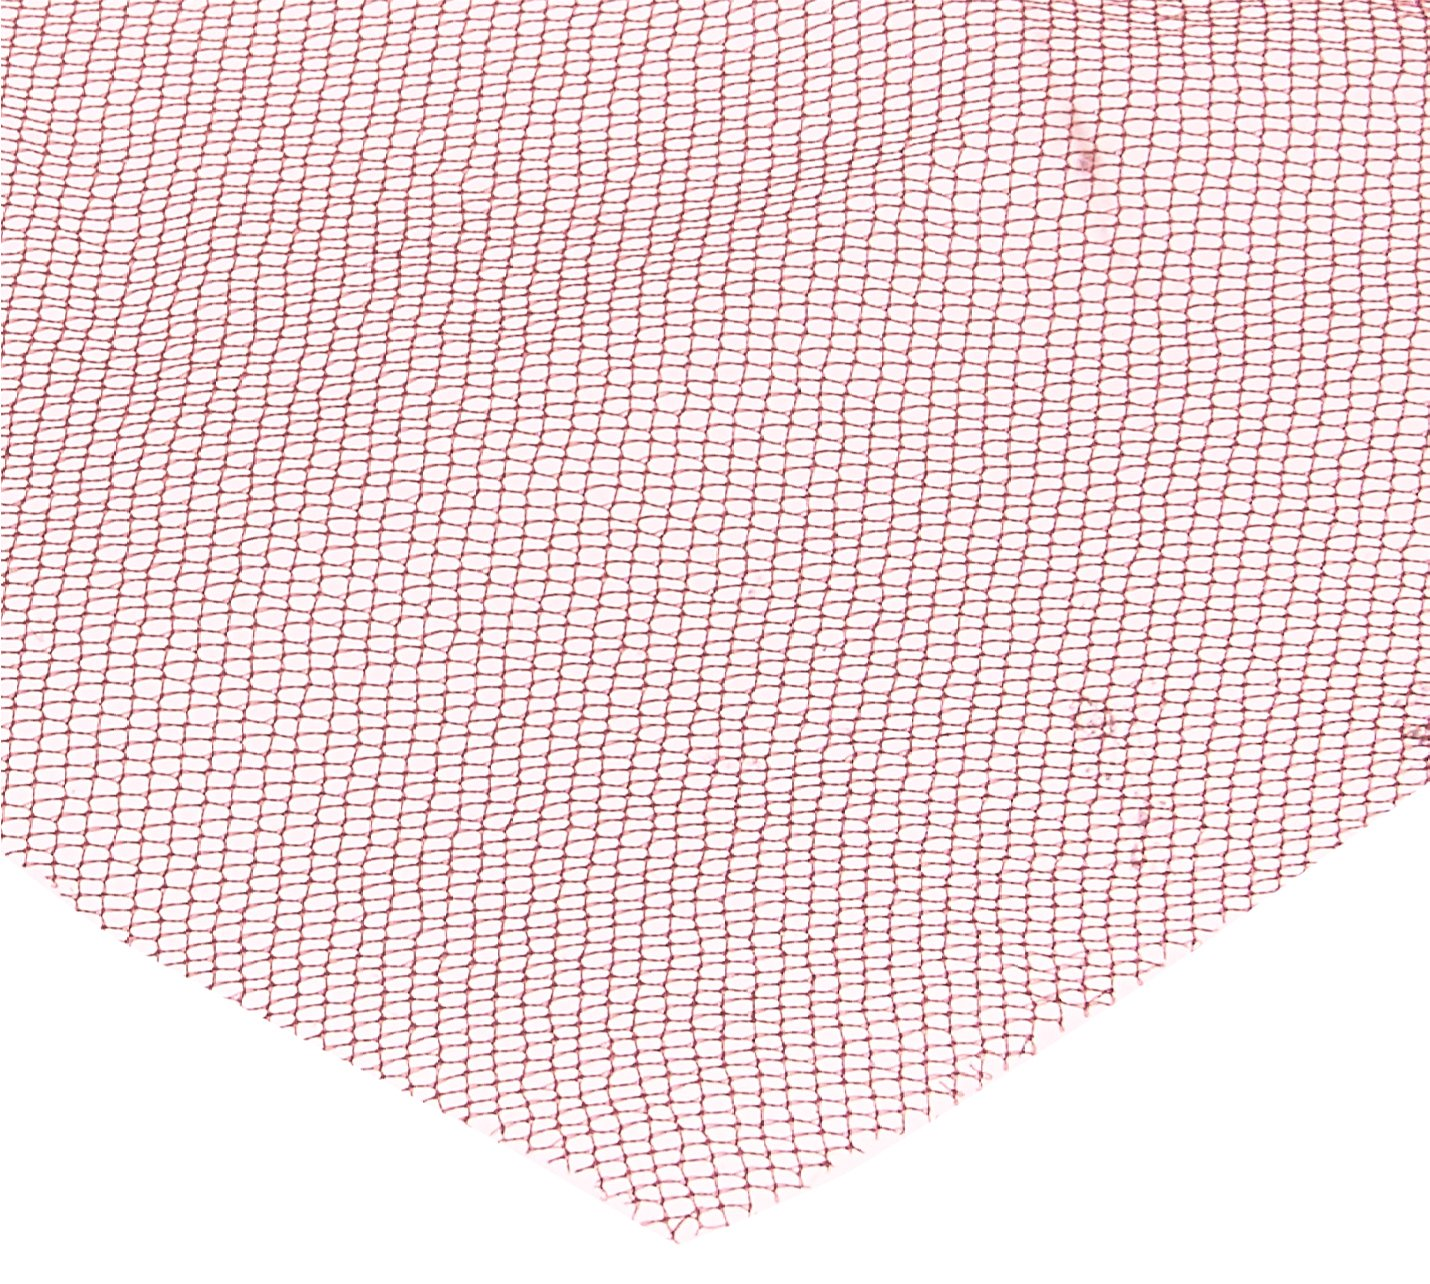 Expo International 54-Inch Classic Nylon Tulle Fabric, 25-Yard Bolt, Red by Expo International Inc.   B0080L7BSK